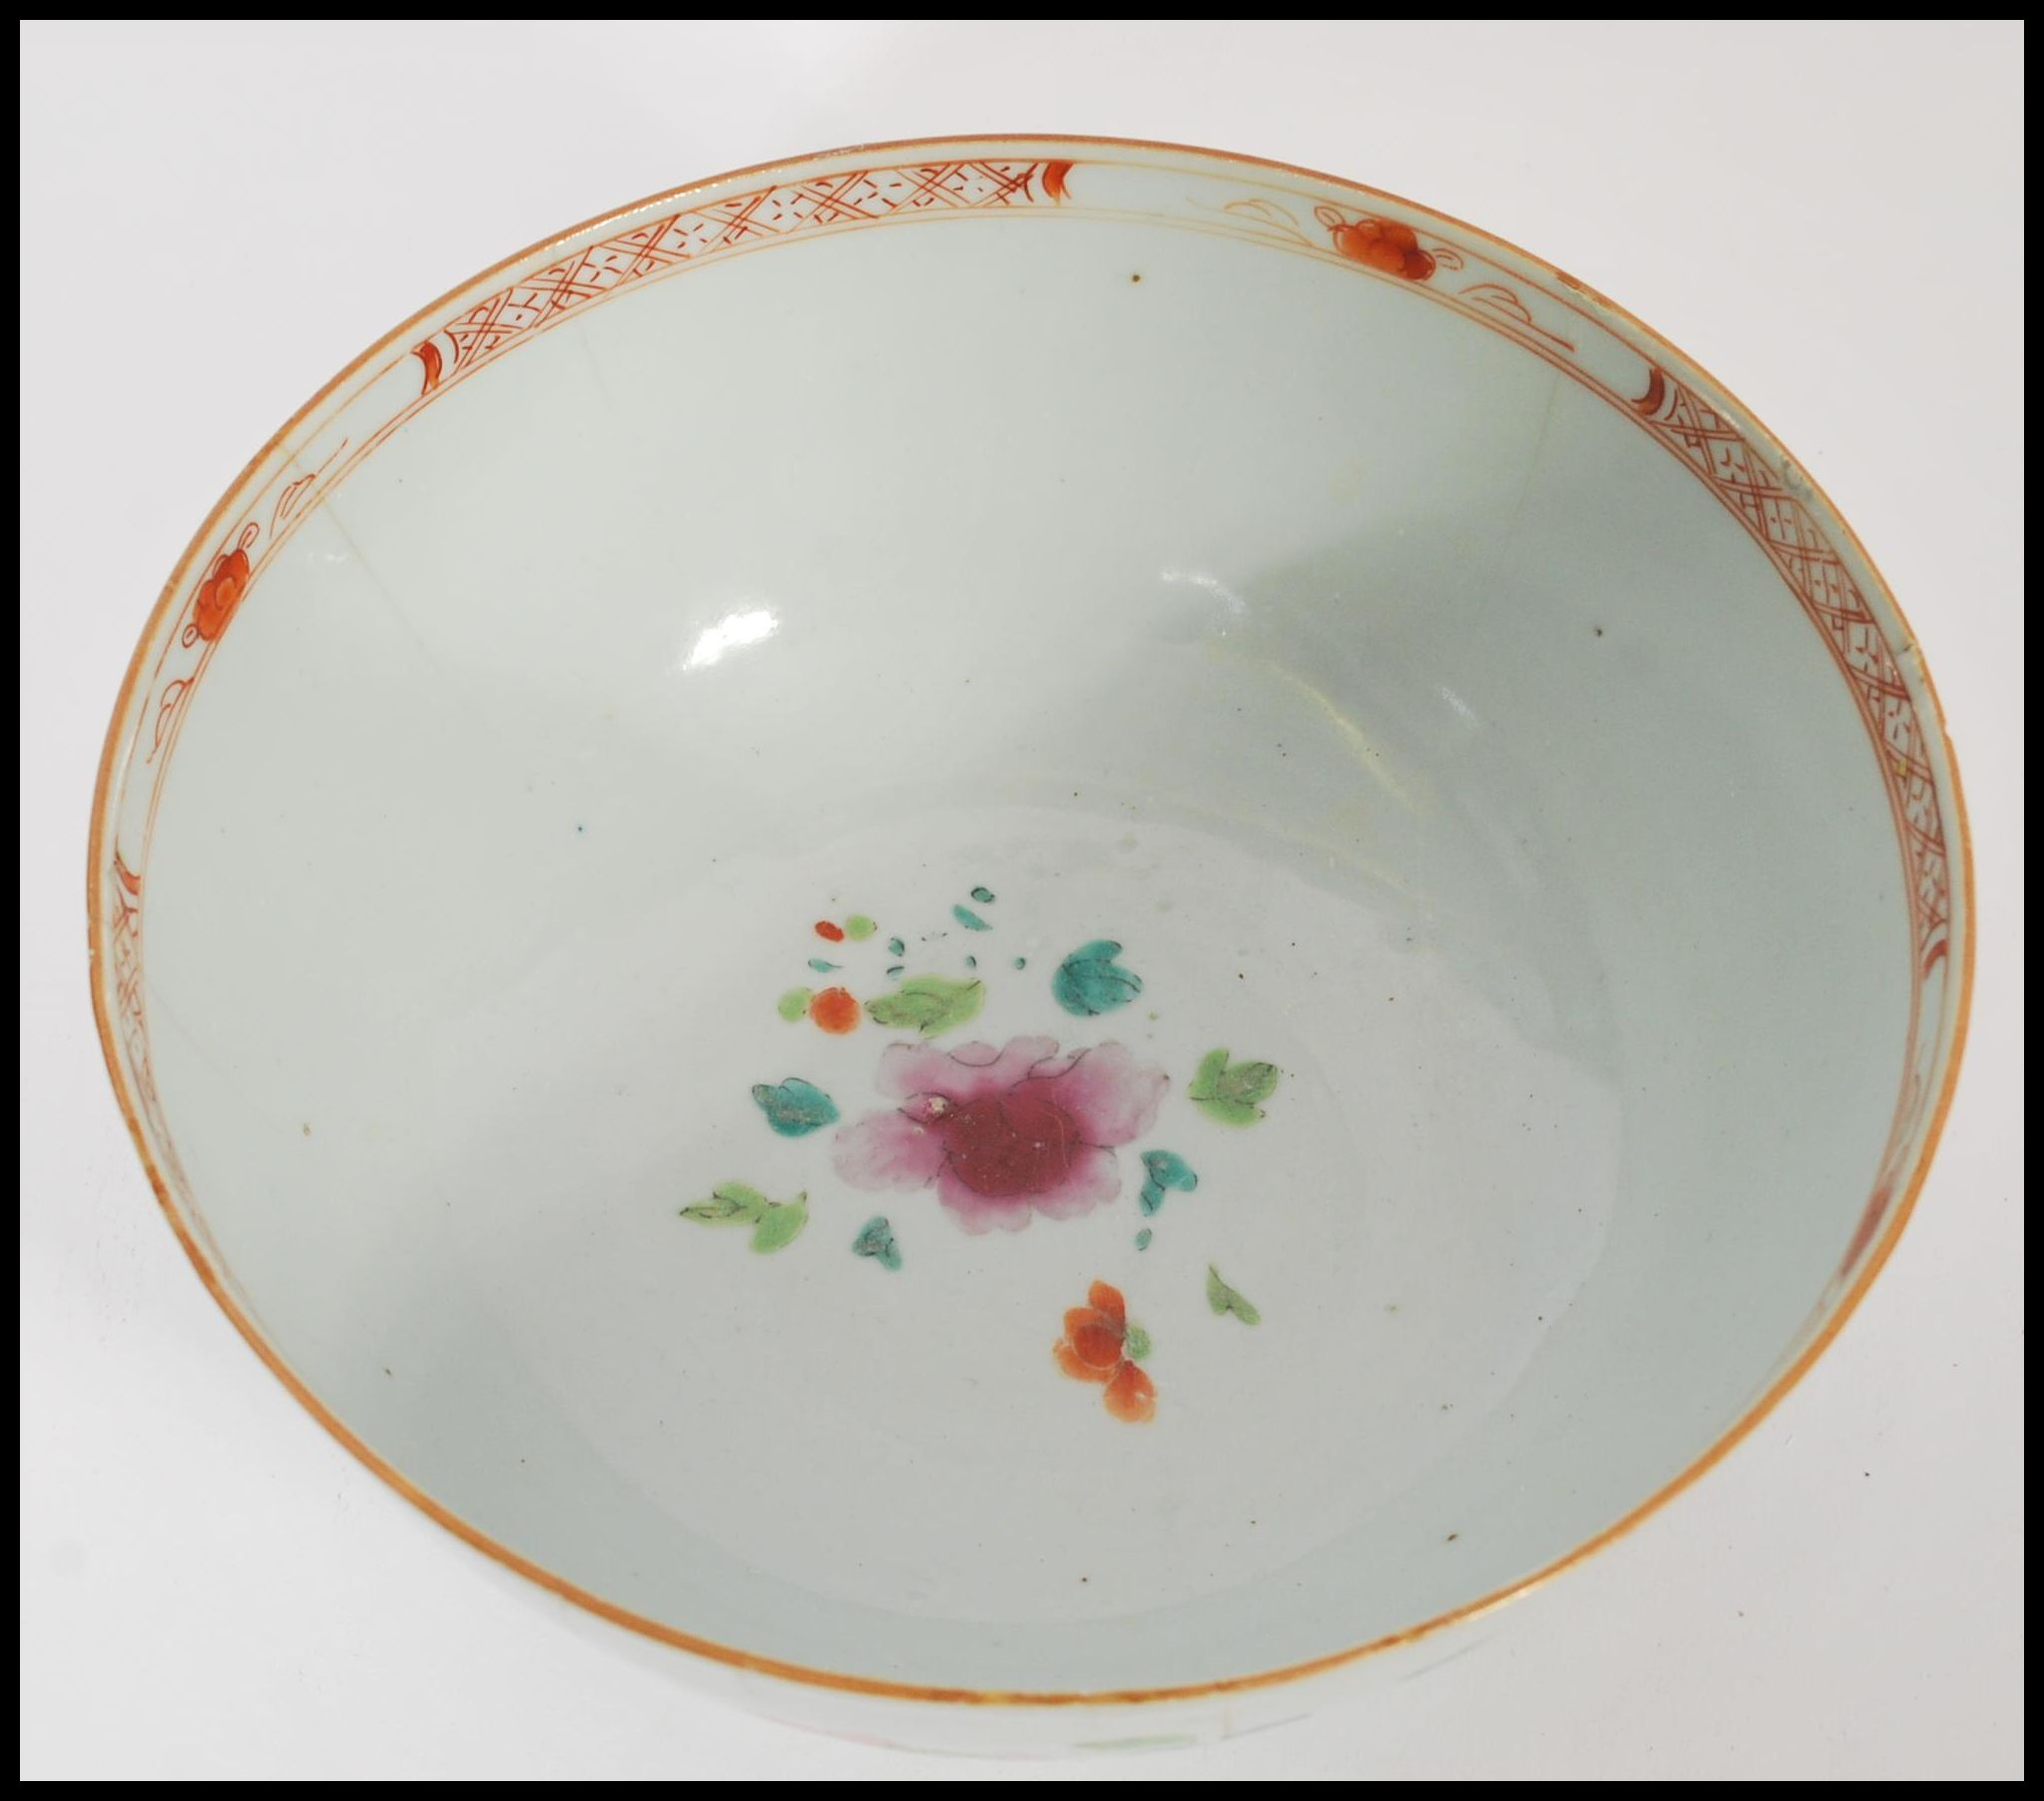 Lot 14 - An 18th century small Cantonese Chinese ceramic bowl having hand painted floral spray with trees